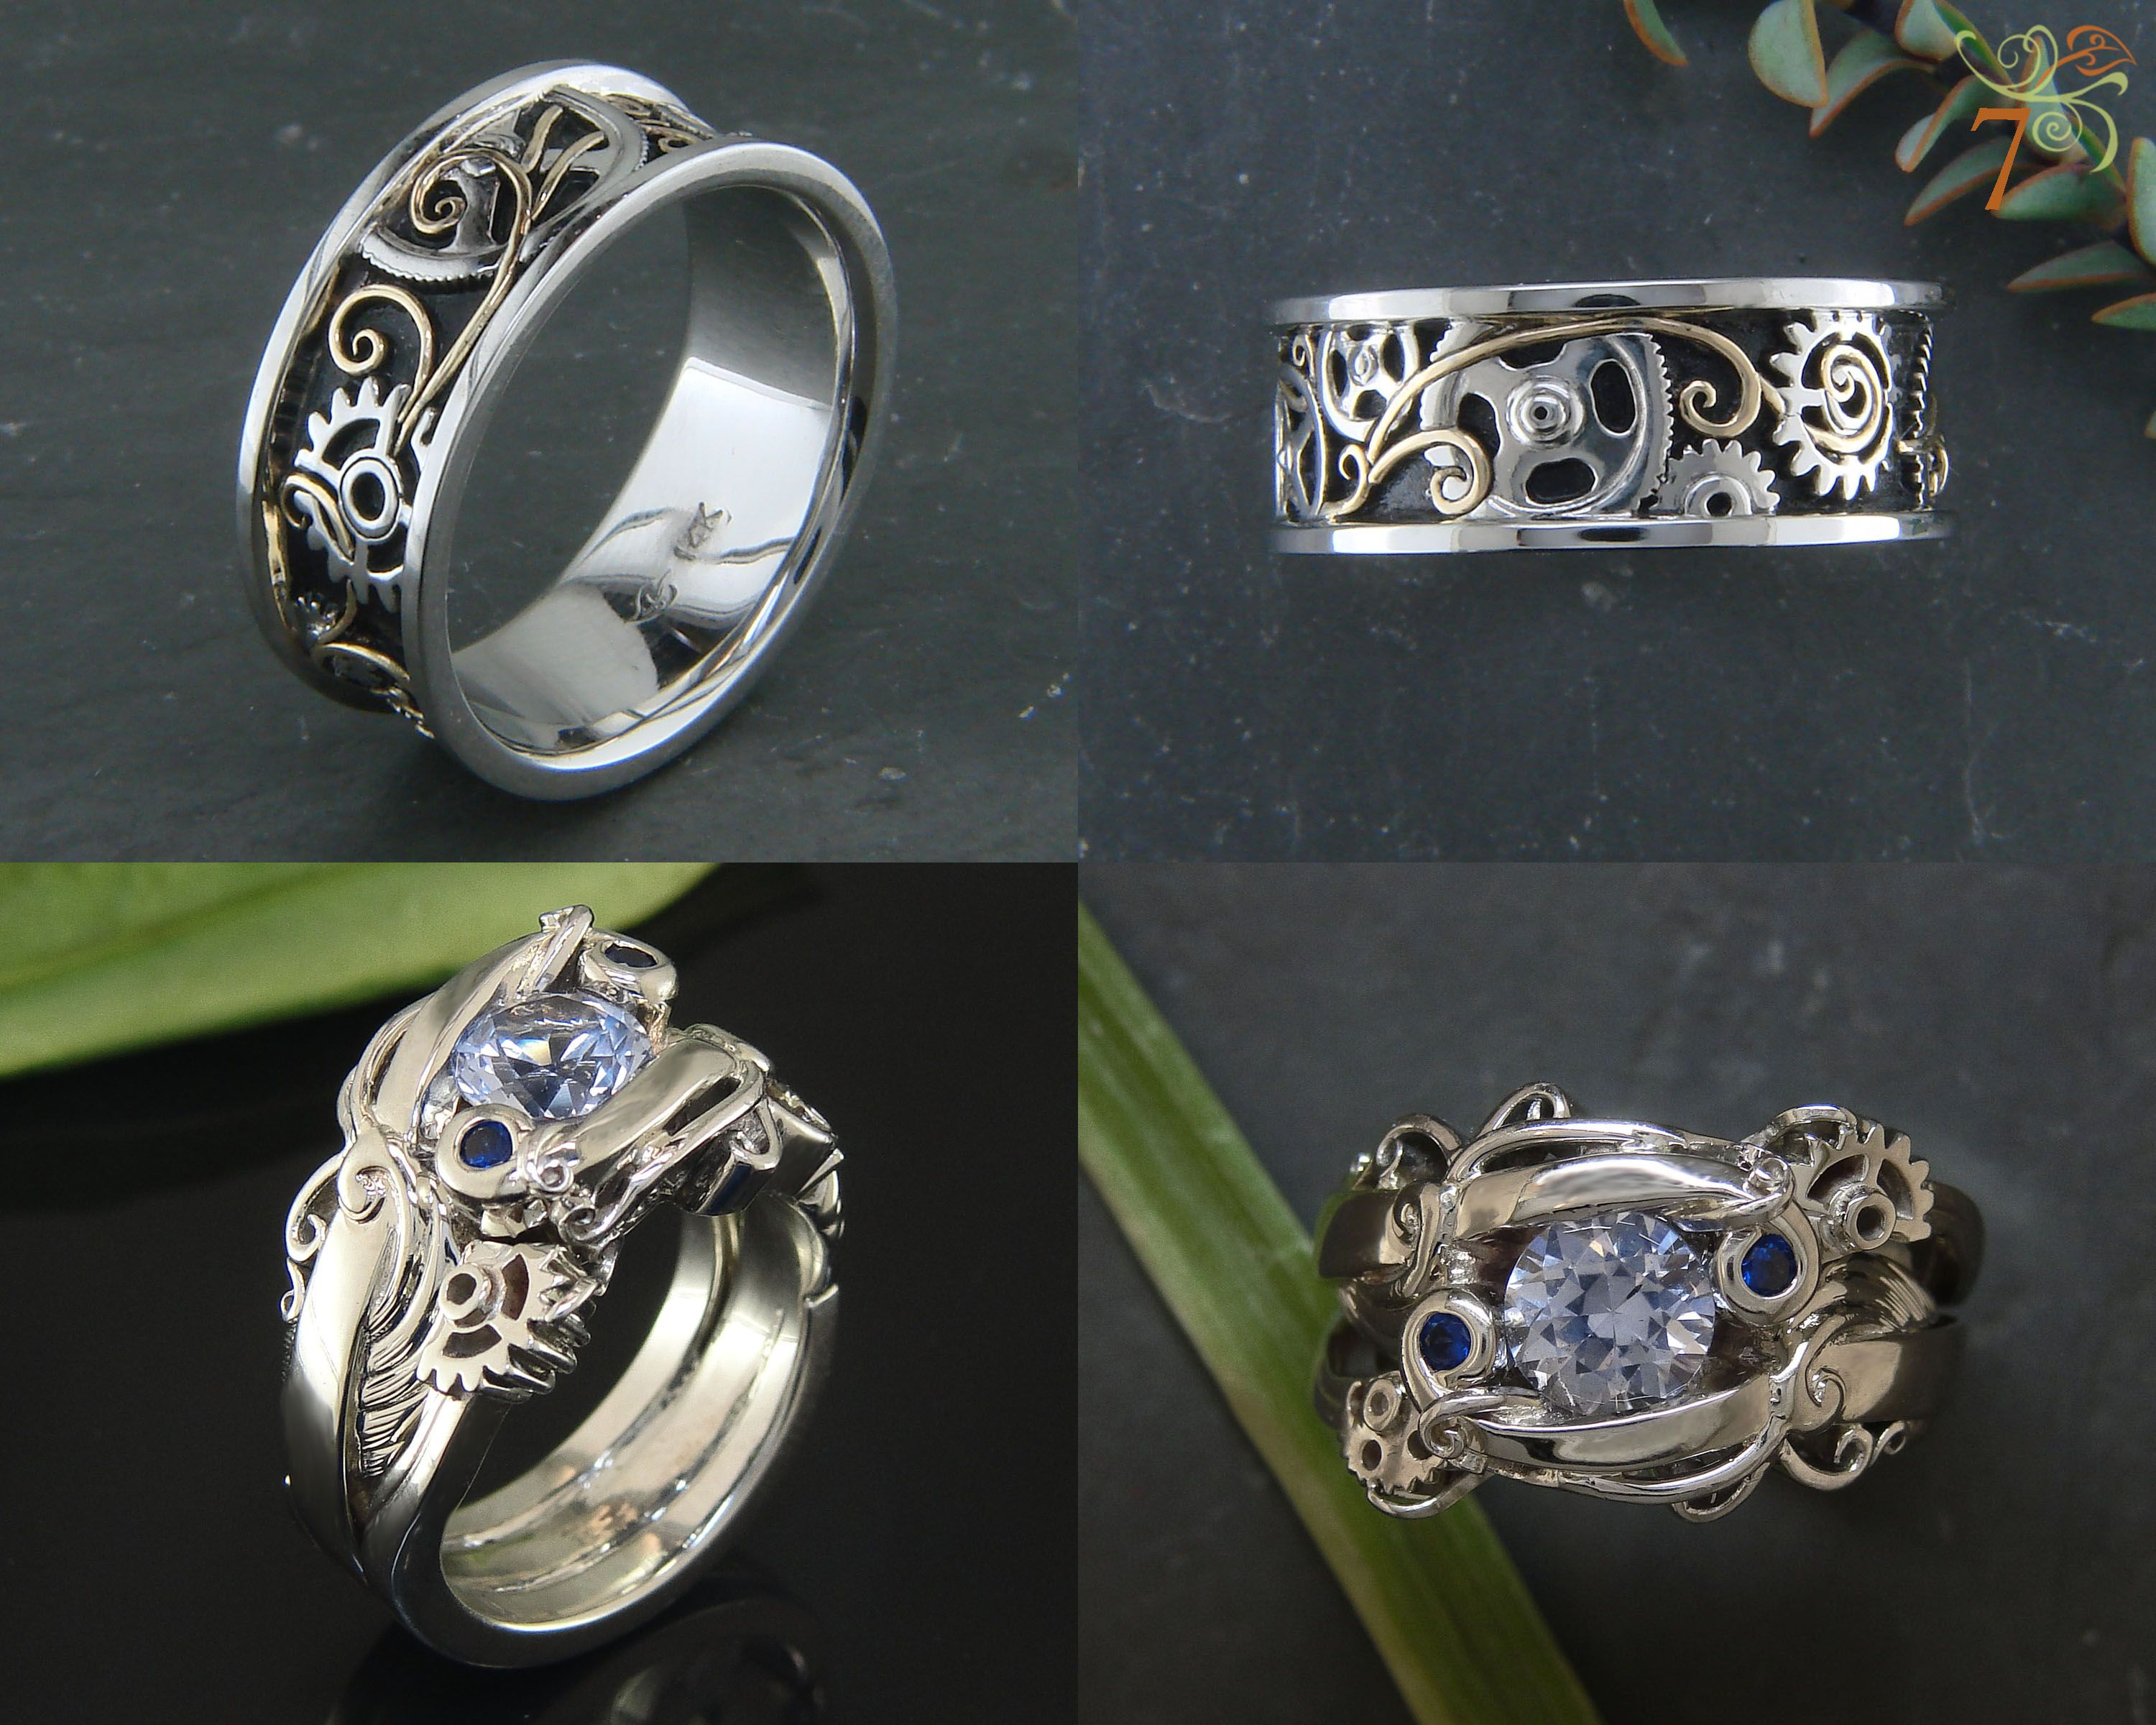 format wendler s rings handmade gold mechanical ring metal and wedding palladium band bridal men recycled bands